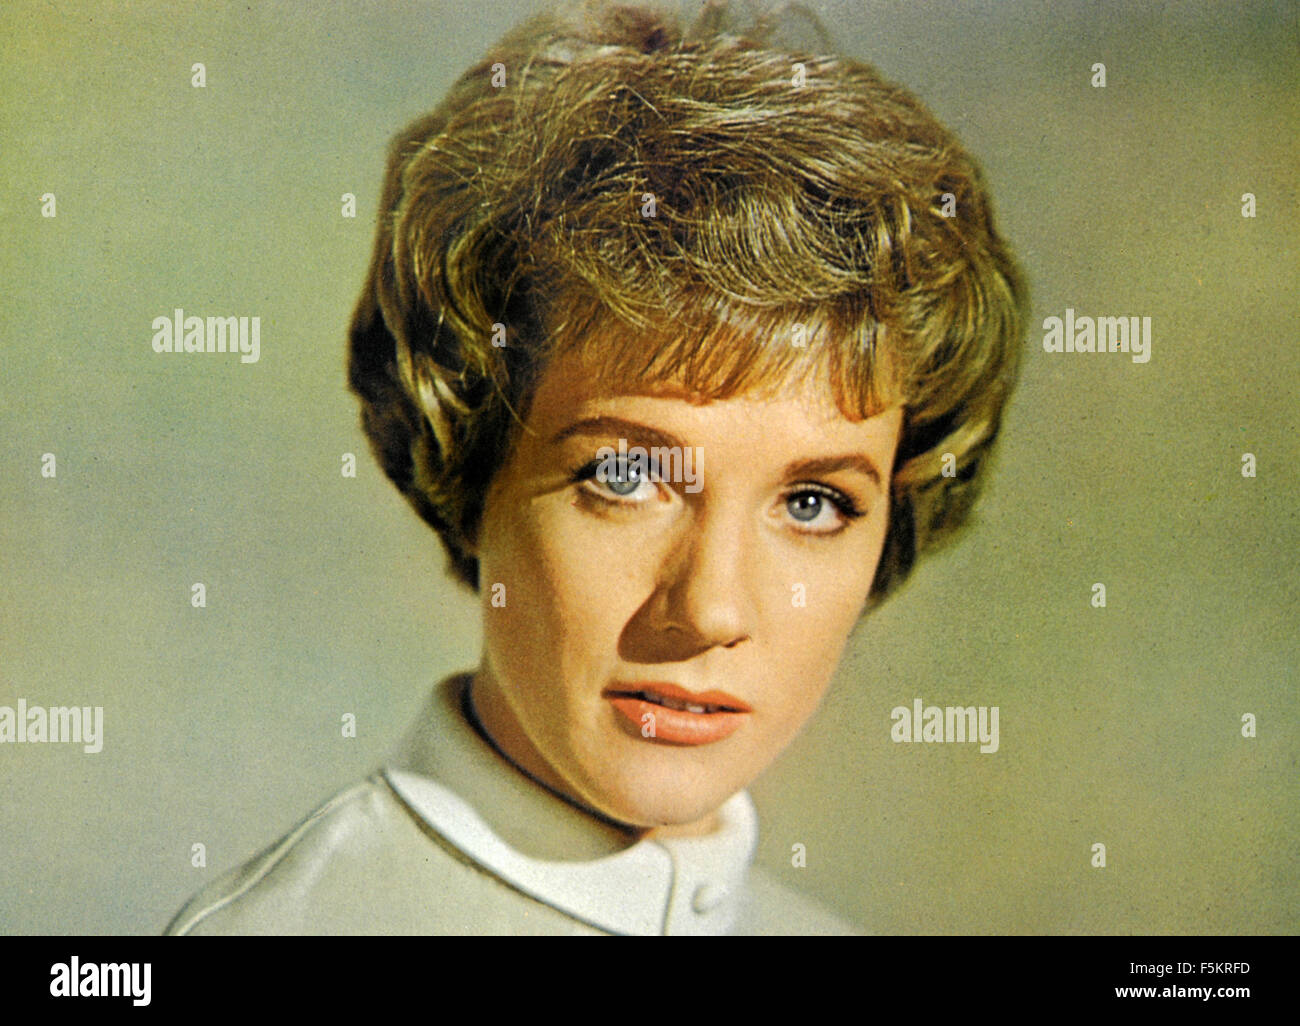 Torn curtain julie andrews - Stock Photo The British Actress Julie Andrews In A Scene From The Film Torn Curtain